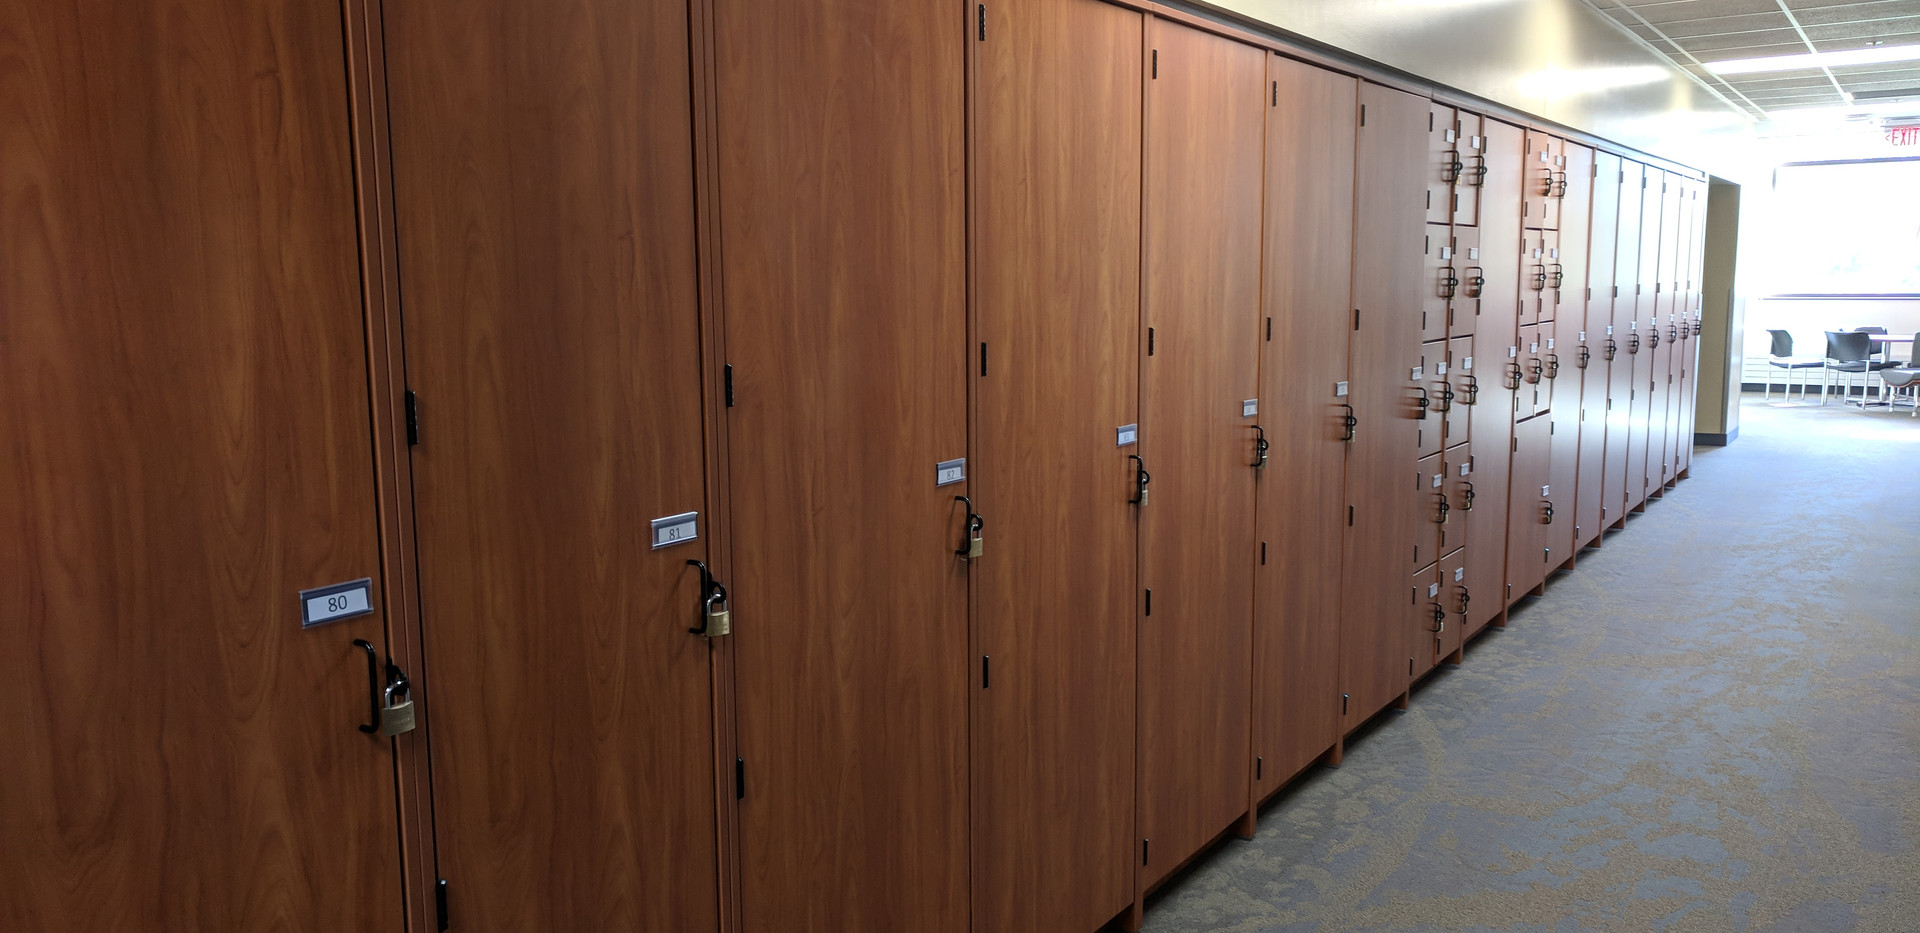 Instrument lockers for student use